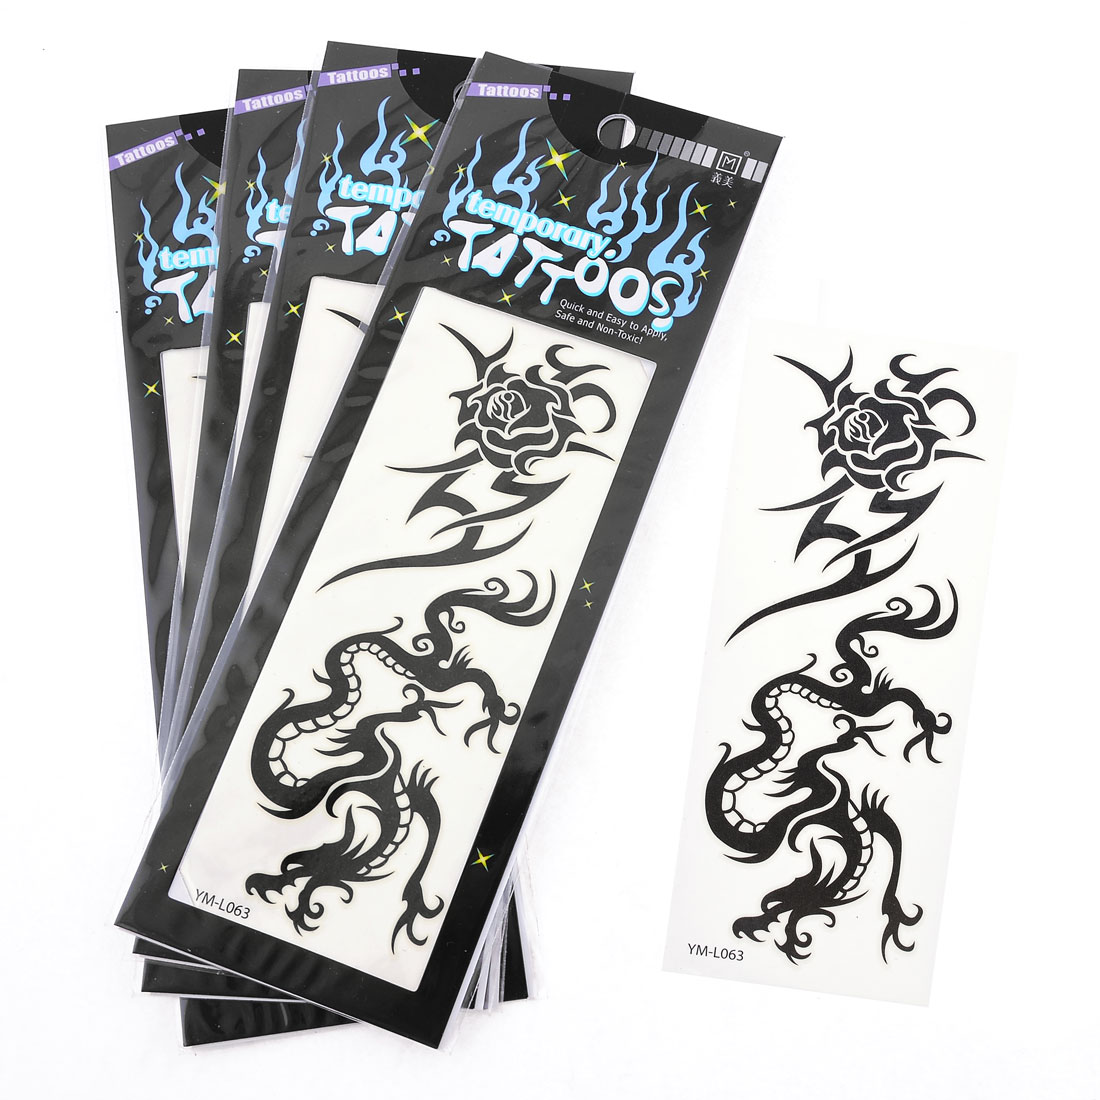 Black Dragon Rose Printed Transfer Luminous Tattoos Sticker Beauty Tool 5 Pcs